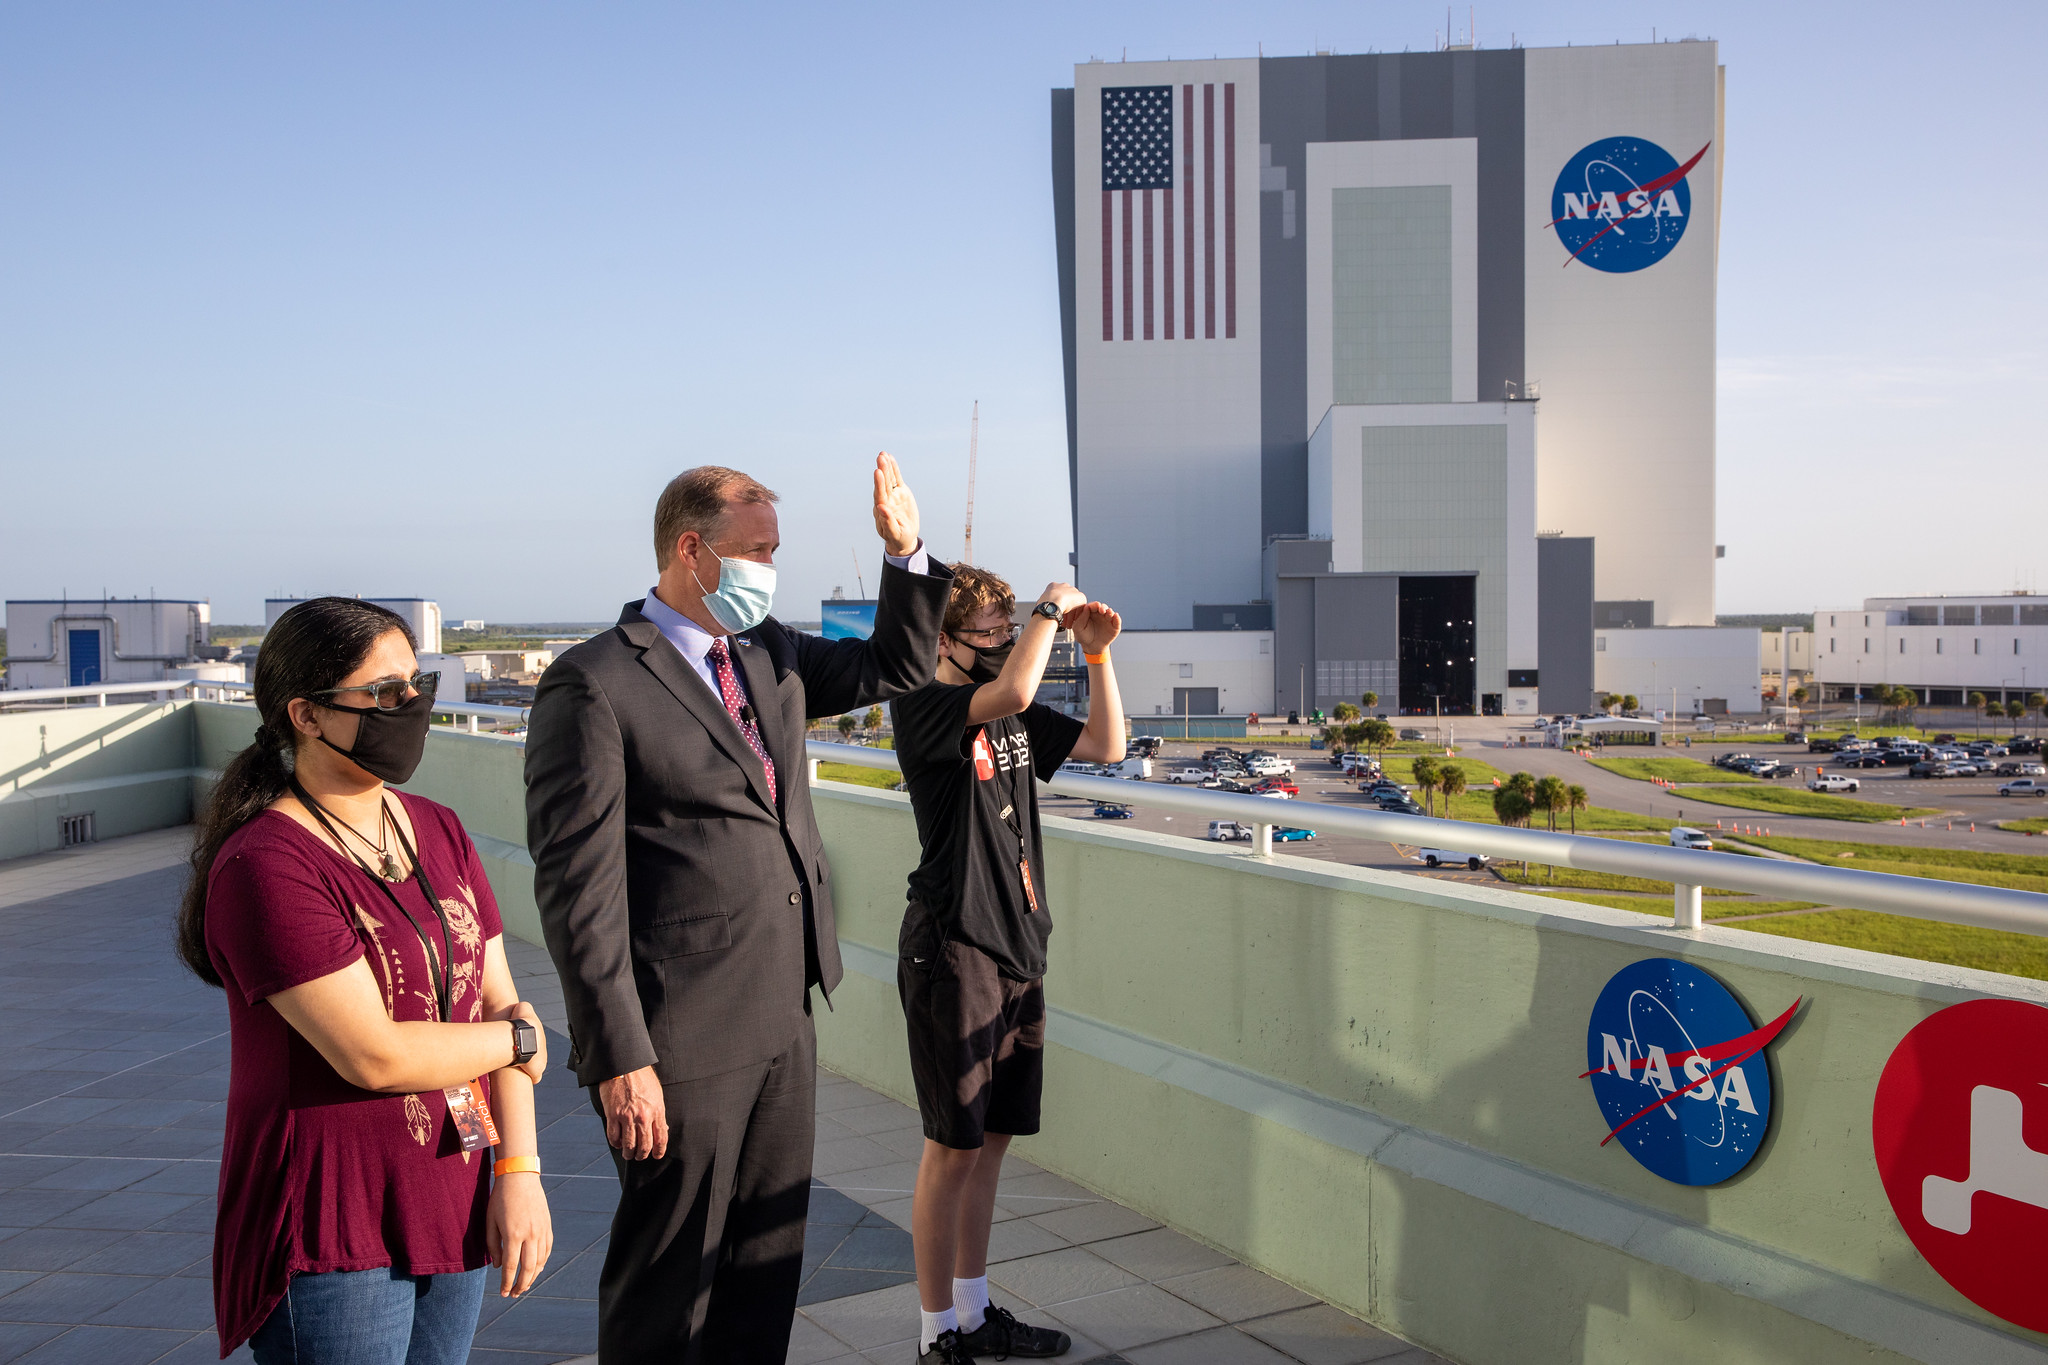 Vaneeza Rupani, who proposed the name Ingenuity, NASA Administrator Jim Bridenstine, and Alex Mather, who proposed the name Perseverance, watch from Kennedy Space Center as the Mars 2020 mission blasted off from Florida.